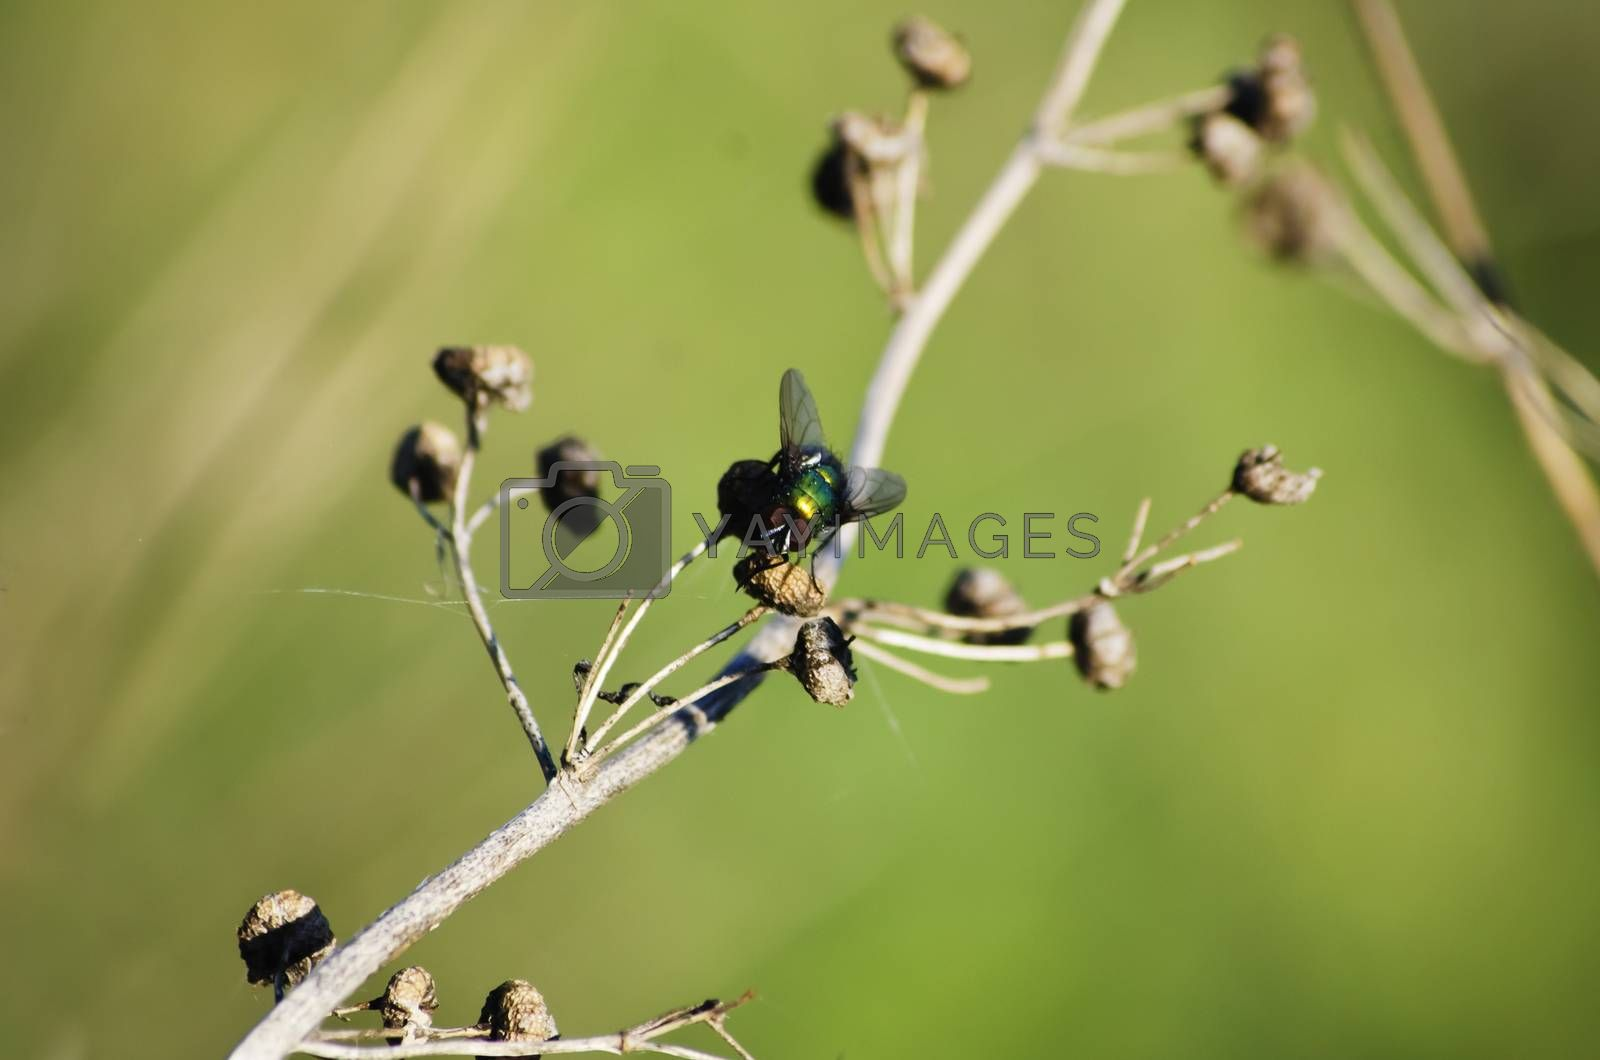 Single Autumn Fly Over Natural Green Background